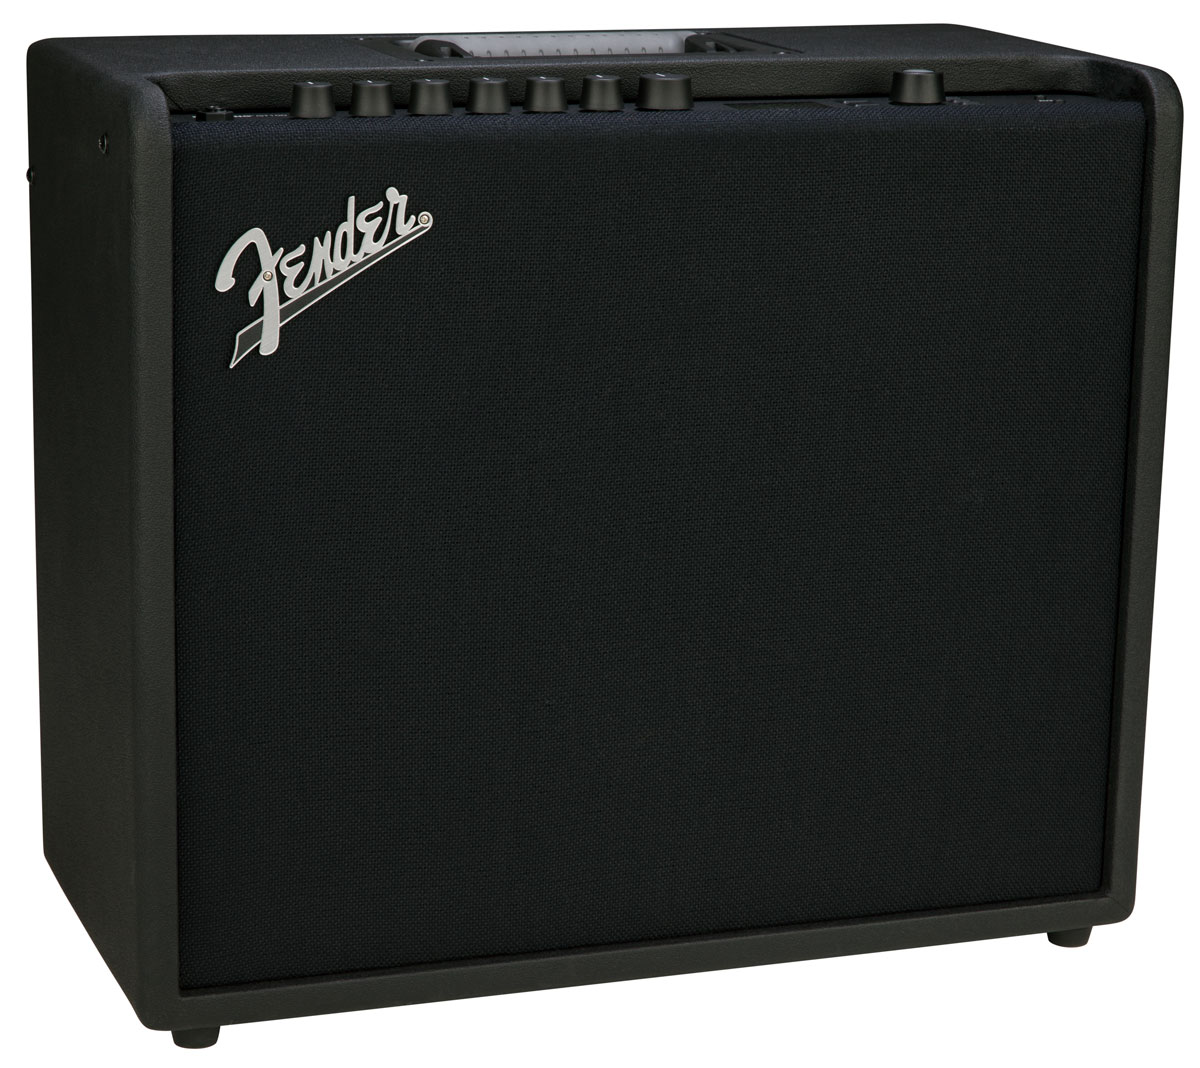 Fender / Mustang GT100 フェンダー ムスタング ギターアンプ【お取り寄せ商品】